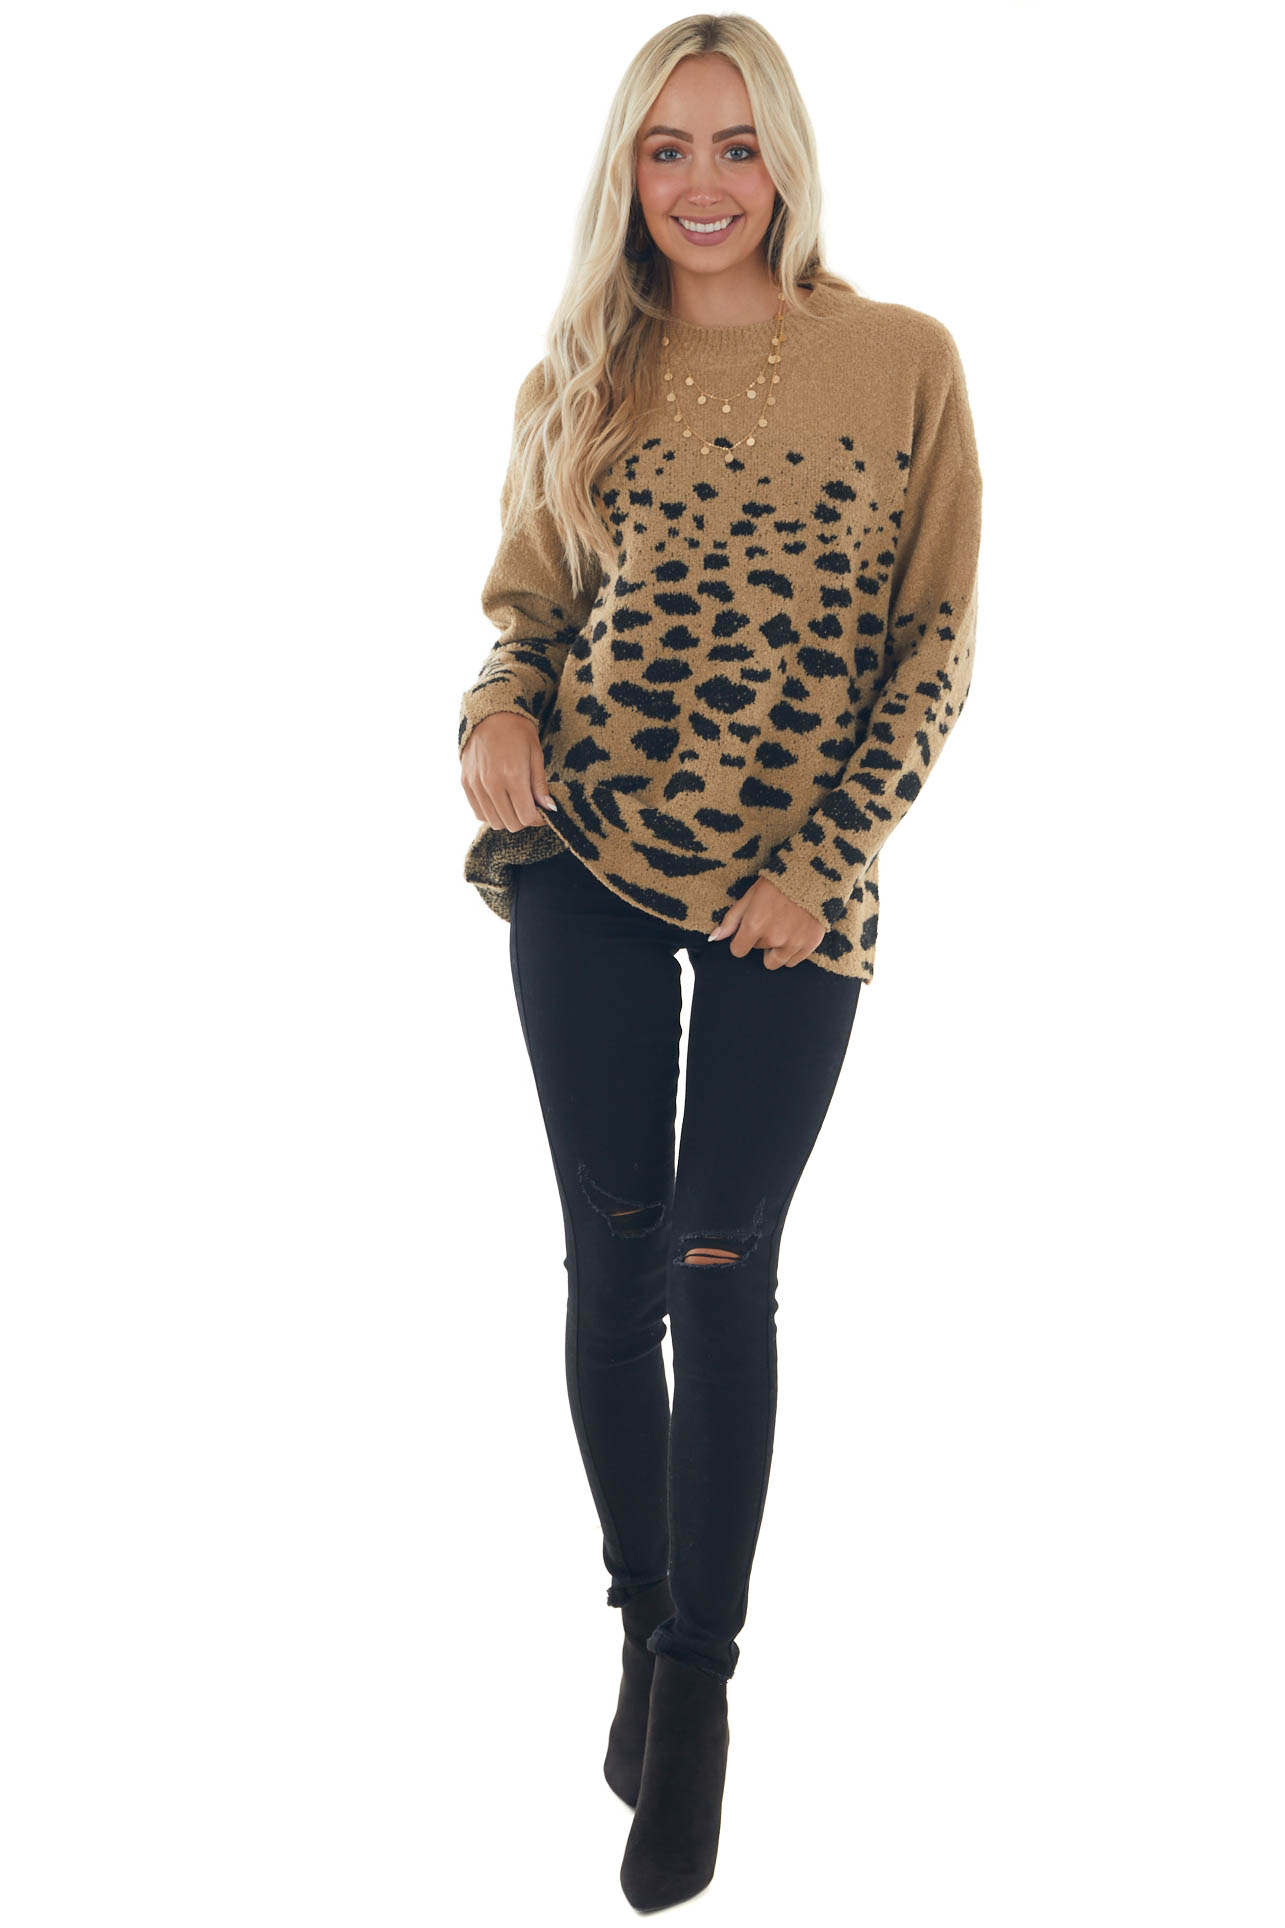 Camel and Black Leopard Fuzzy Sweater